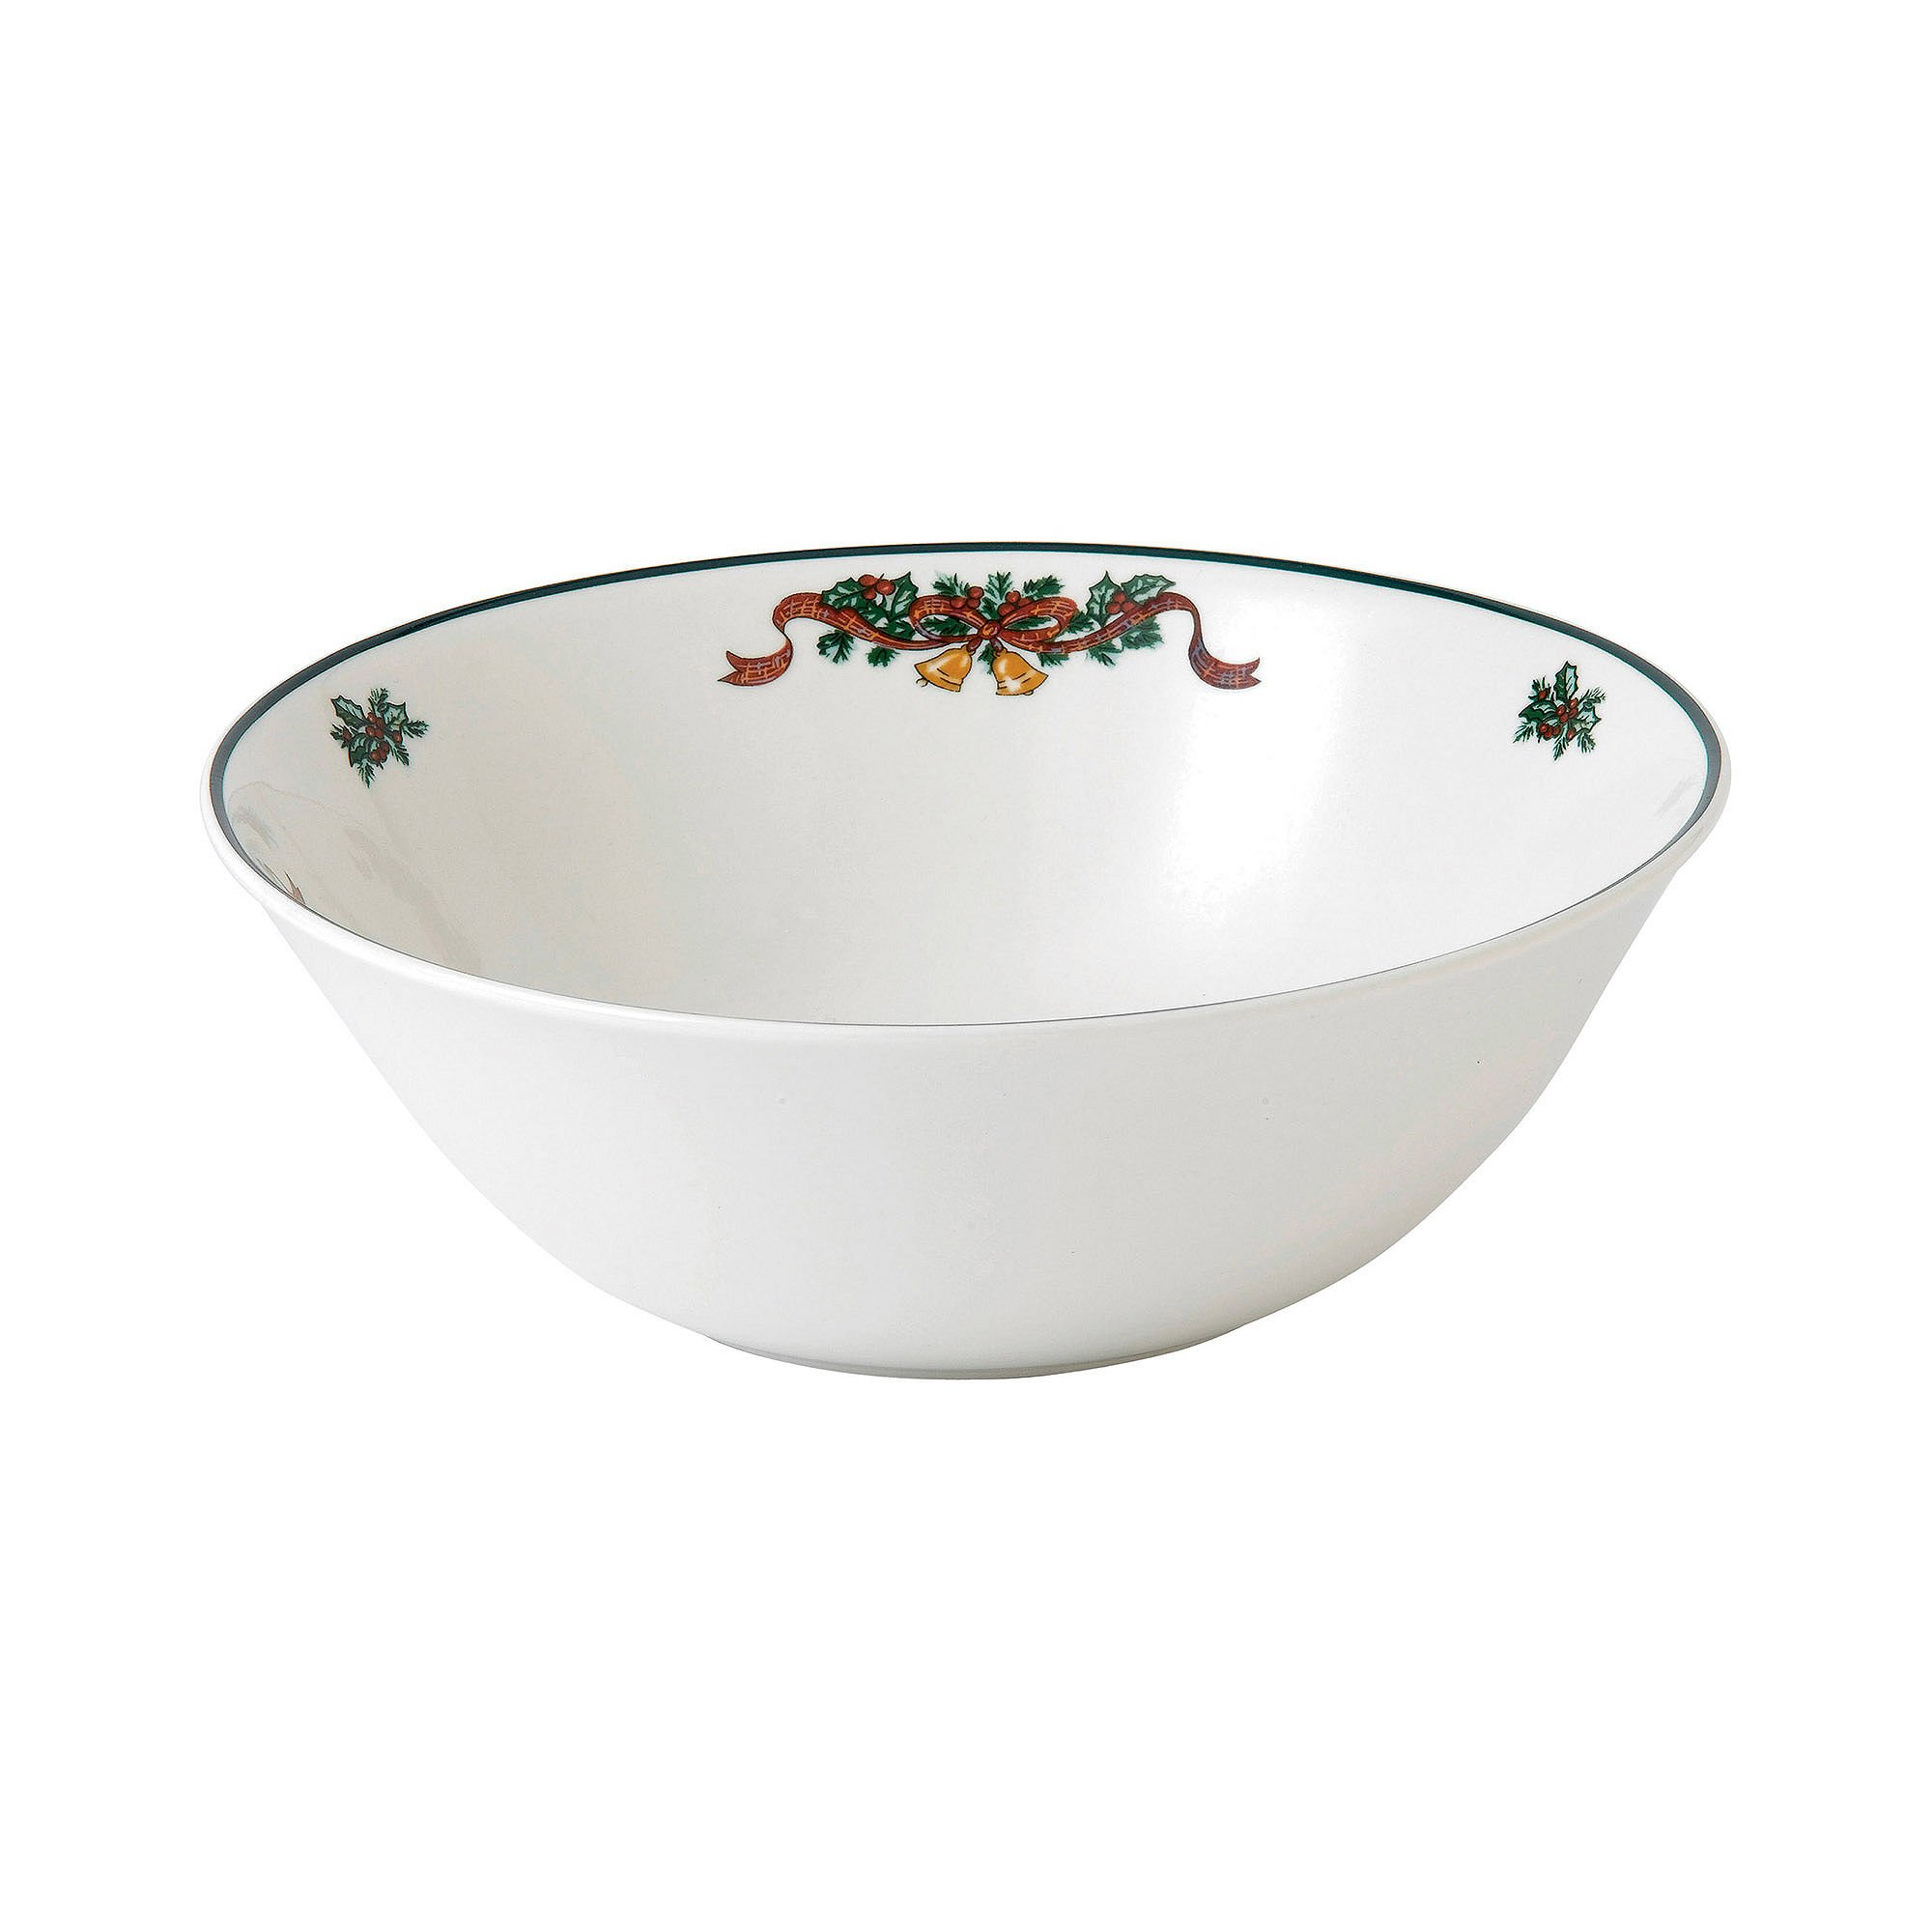 Johnson Brothers Victorian Christmas Open Vegetable Bowl, Multicolored